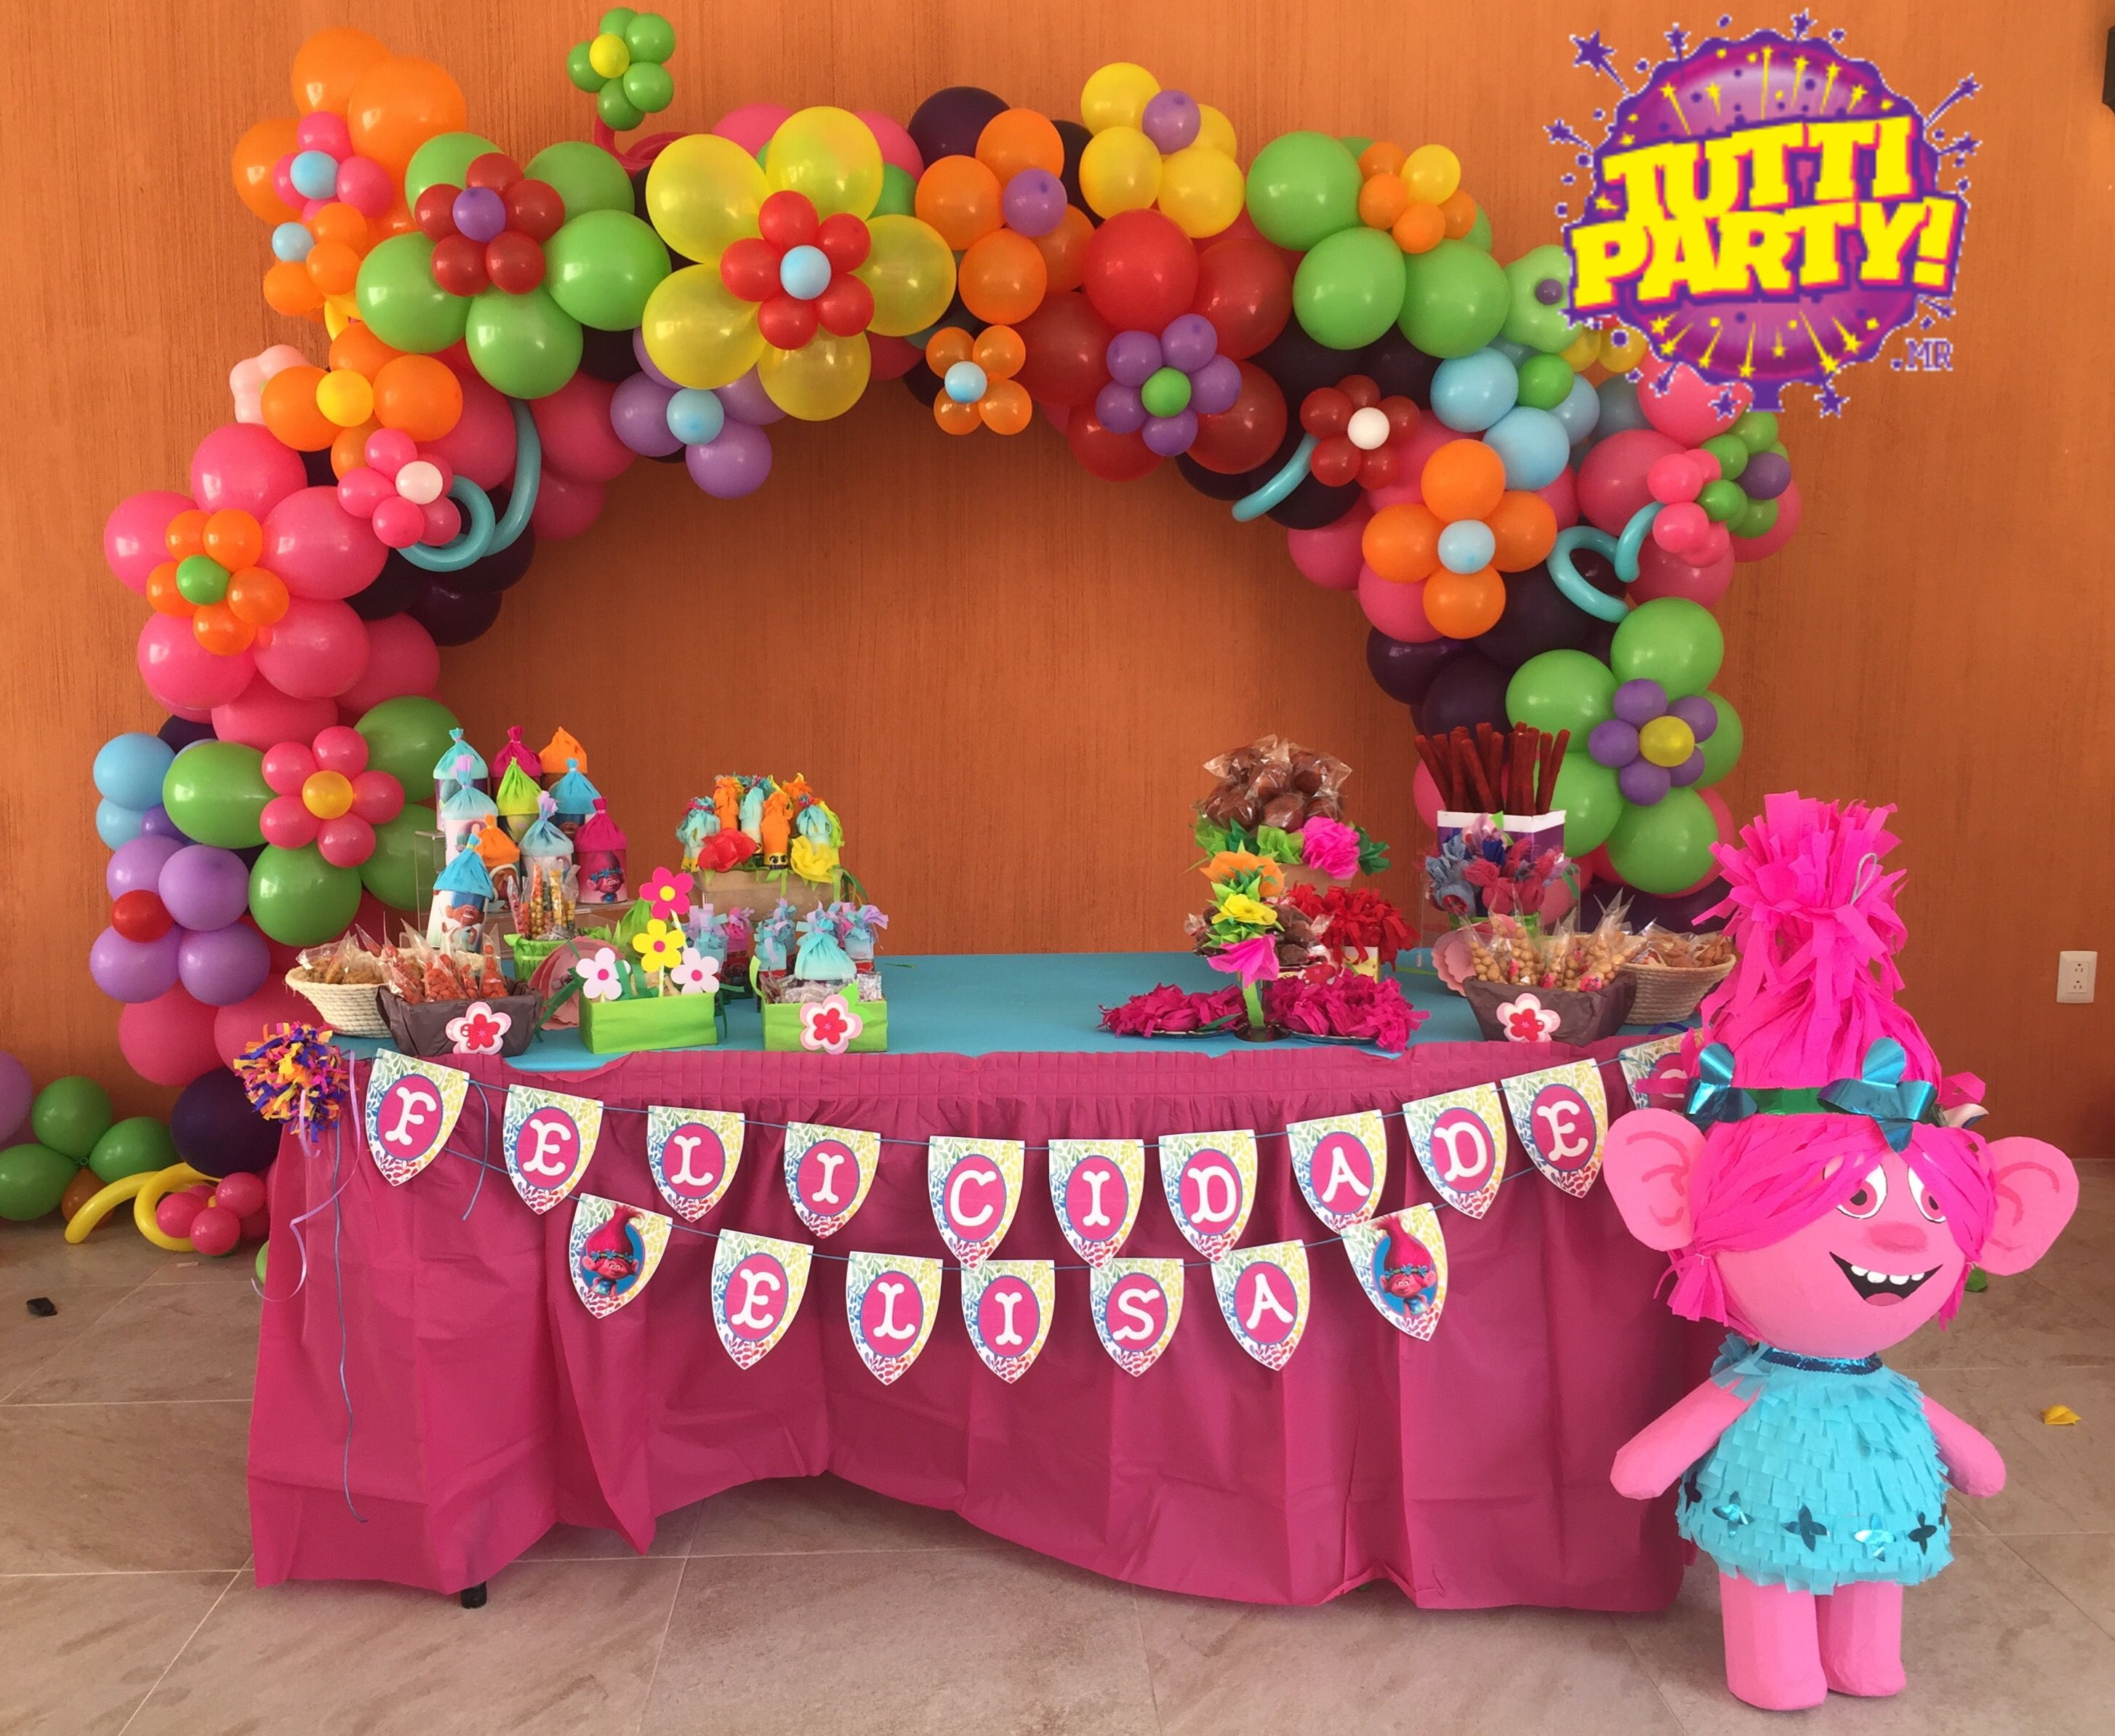 Trolls party decorations trolls arch balloons ideas for B day party decoration ideas